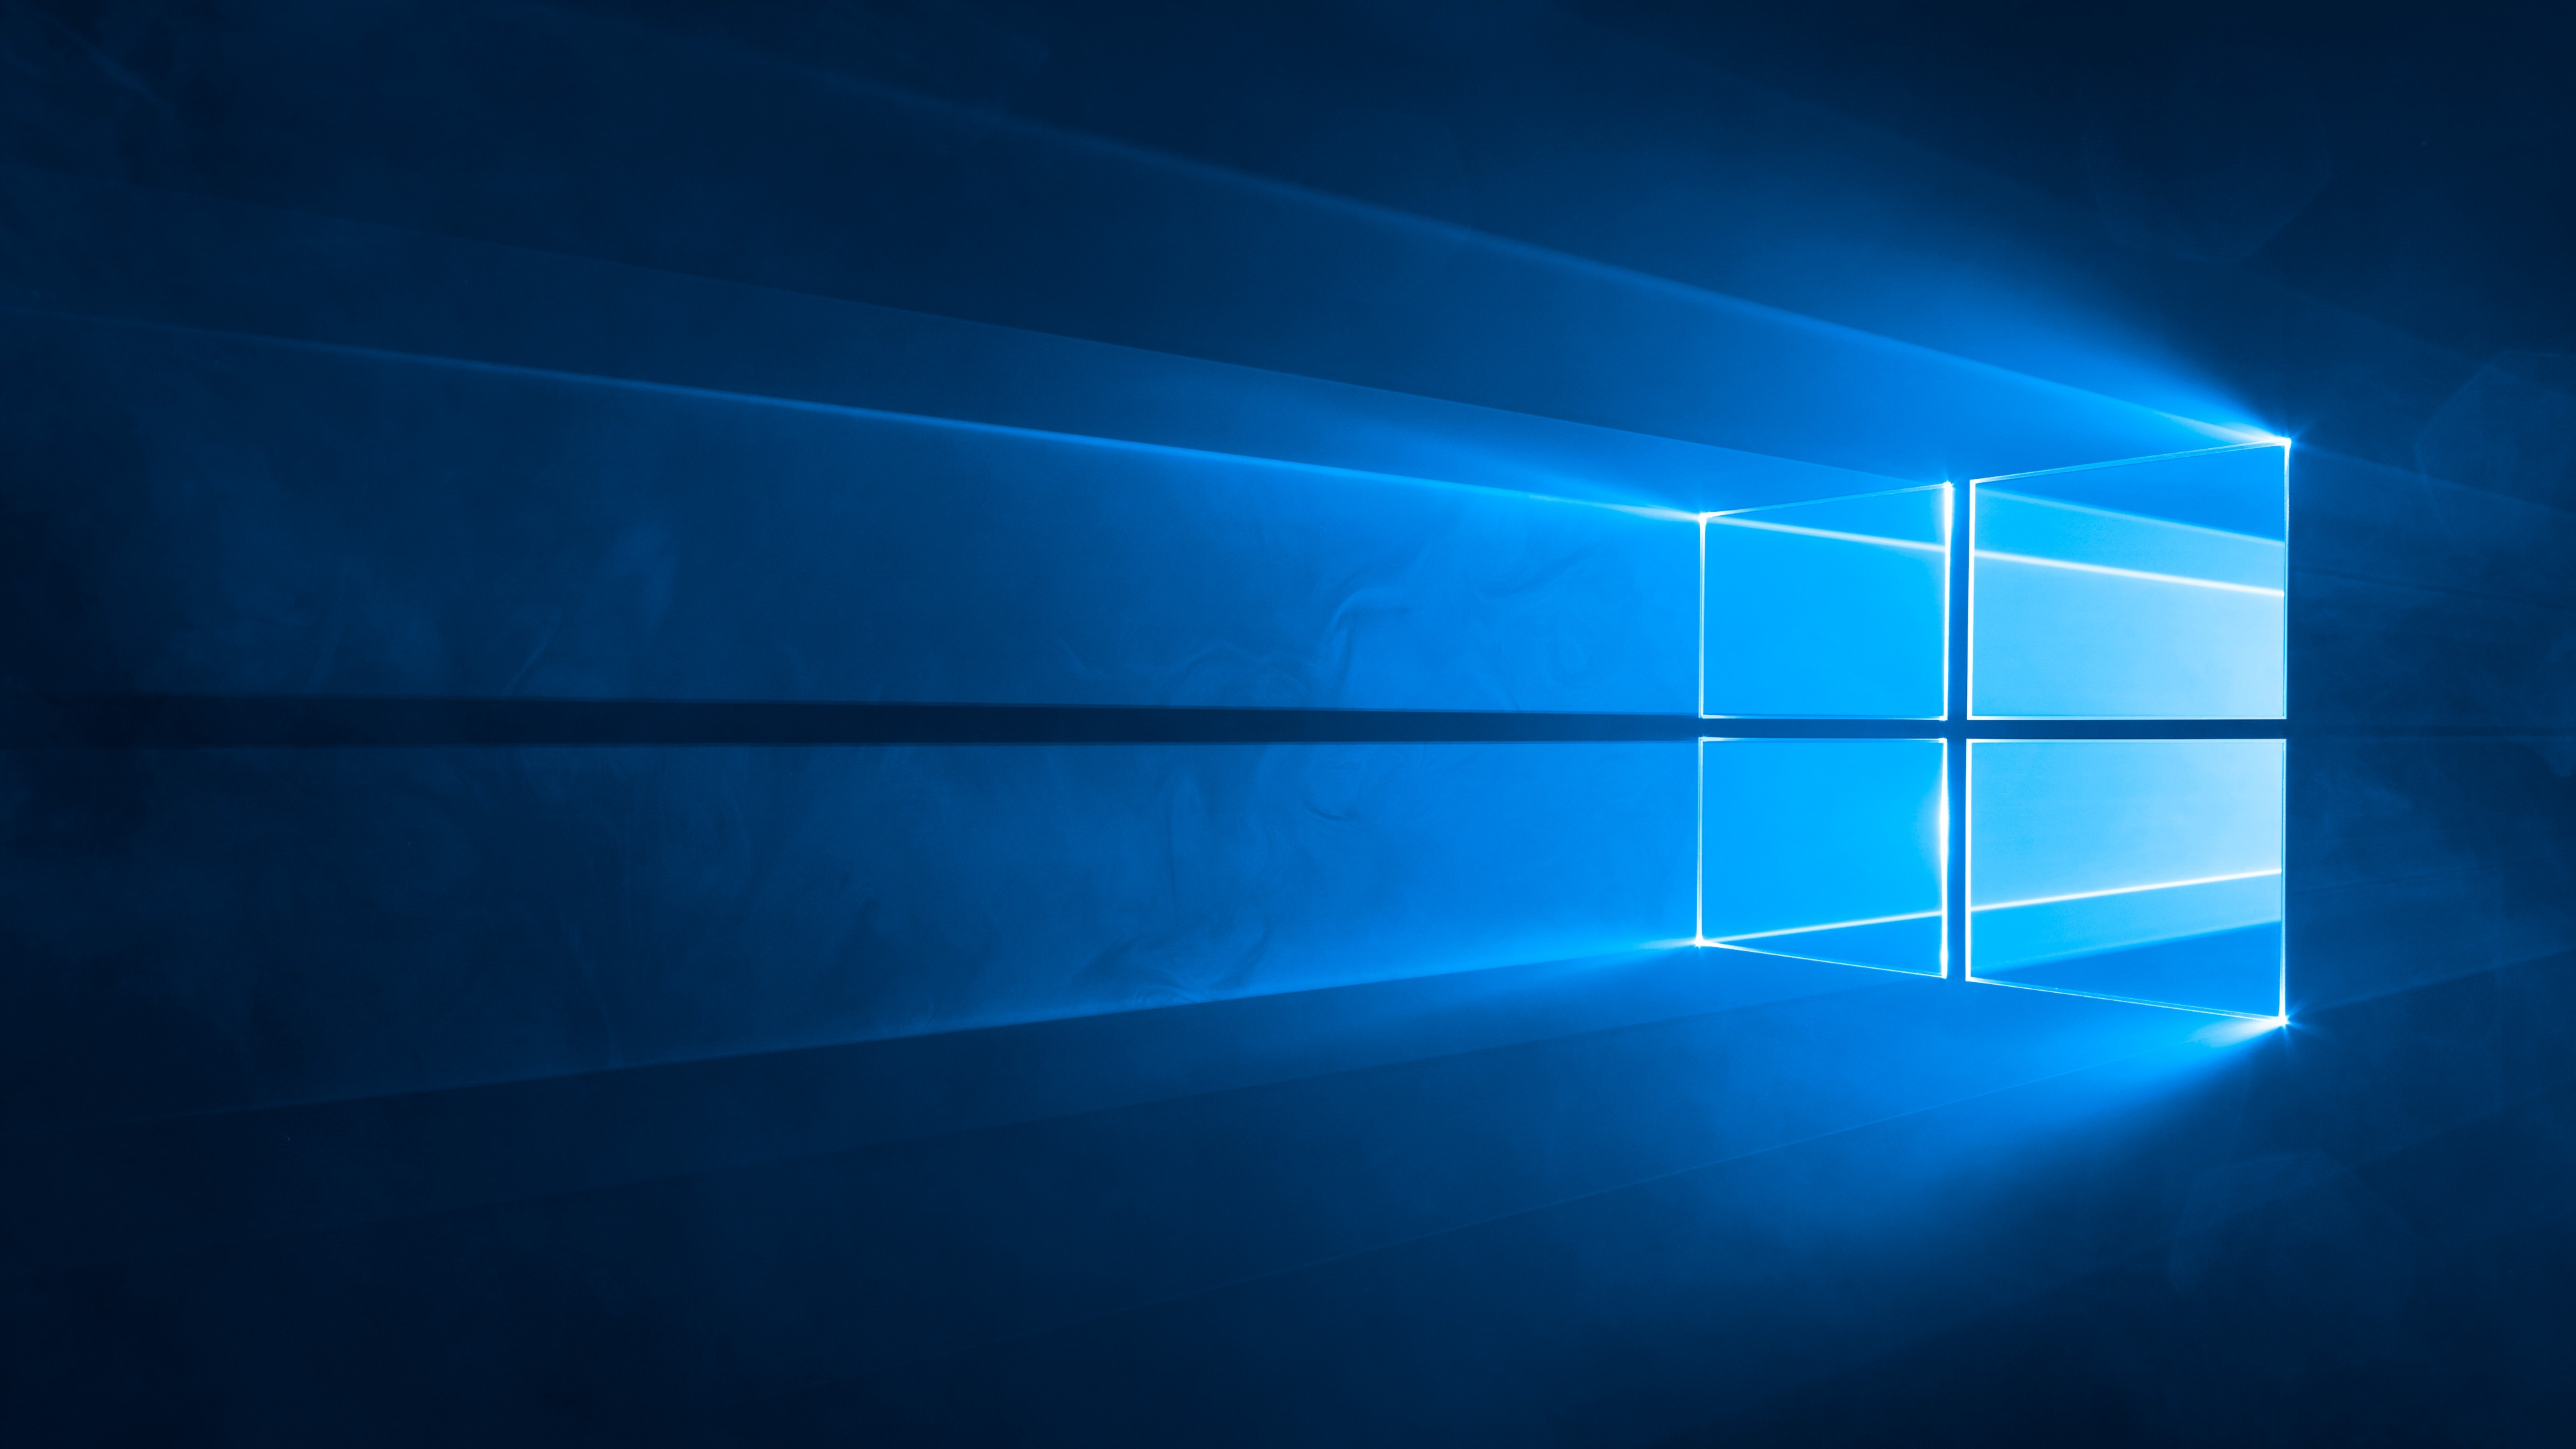 Windows 10 Wallpapers HD Wallpapers 3840x2160